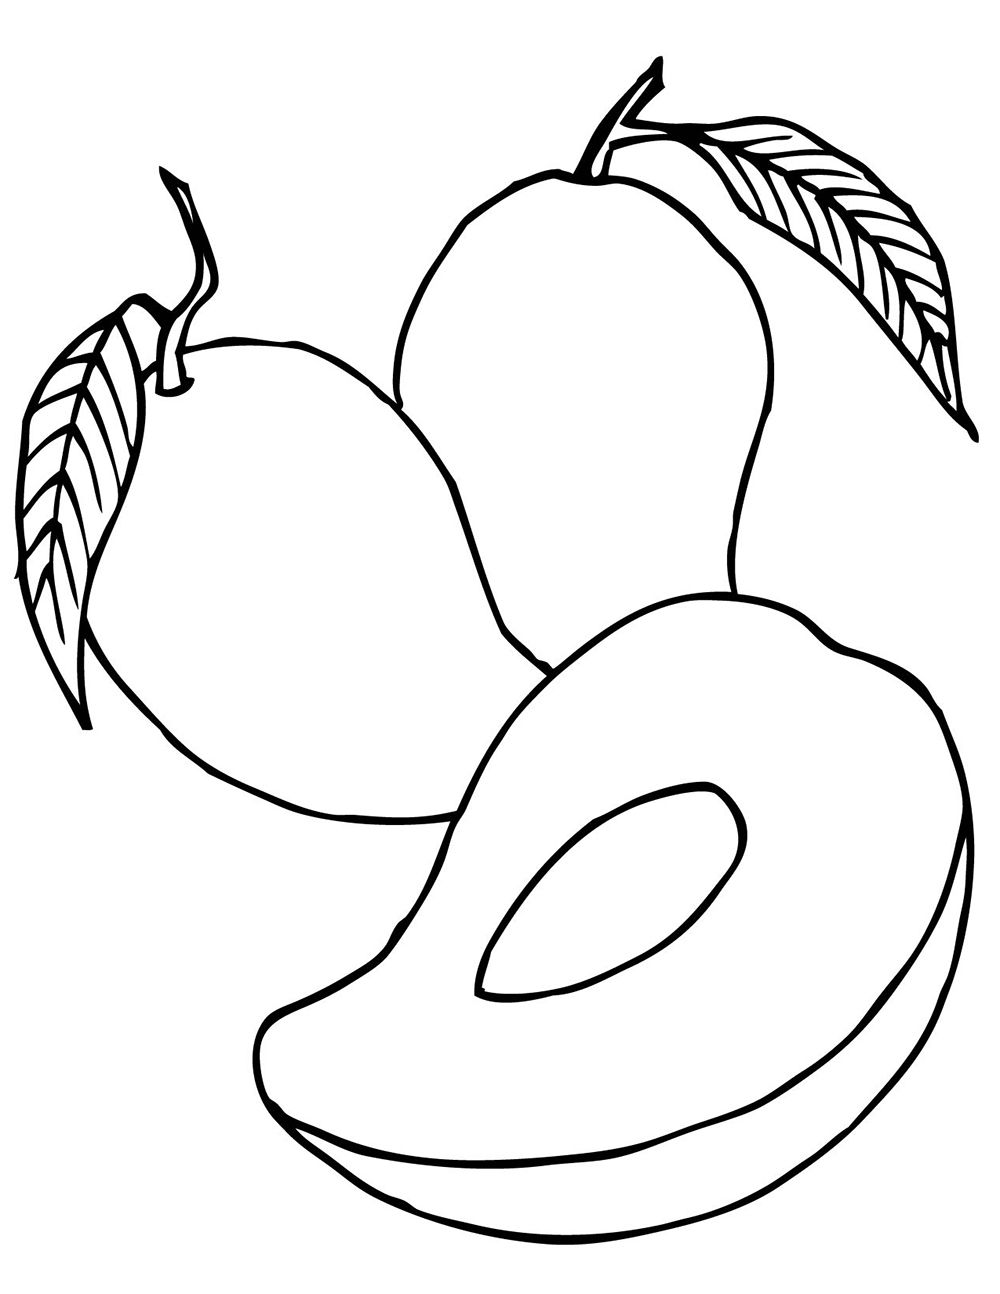 Sweet Mangoes Fruits Coloring Pages For Kids Bs Printable Fruits Coloring Pages For Kids Fruit Coloring Pages Coloring Pages Coloring Pages For Kids